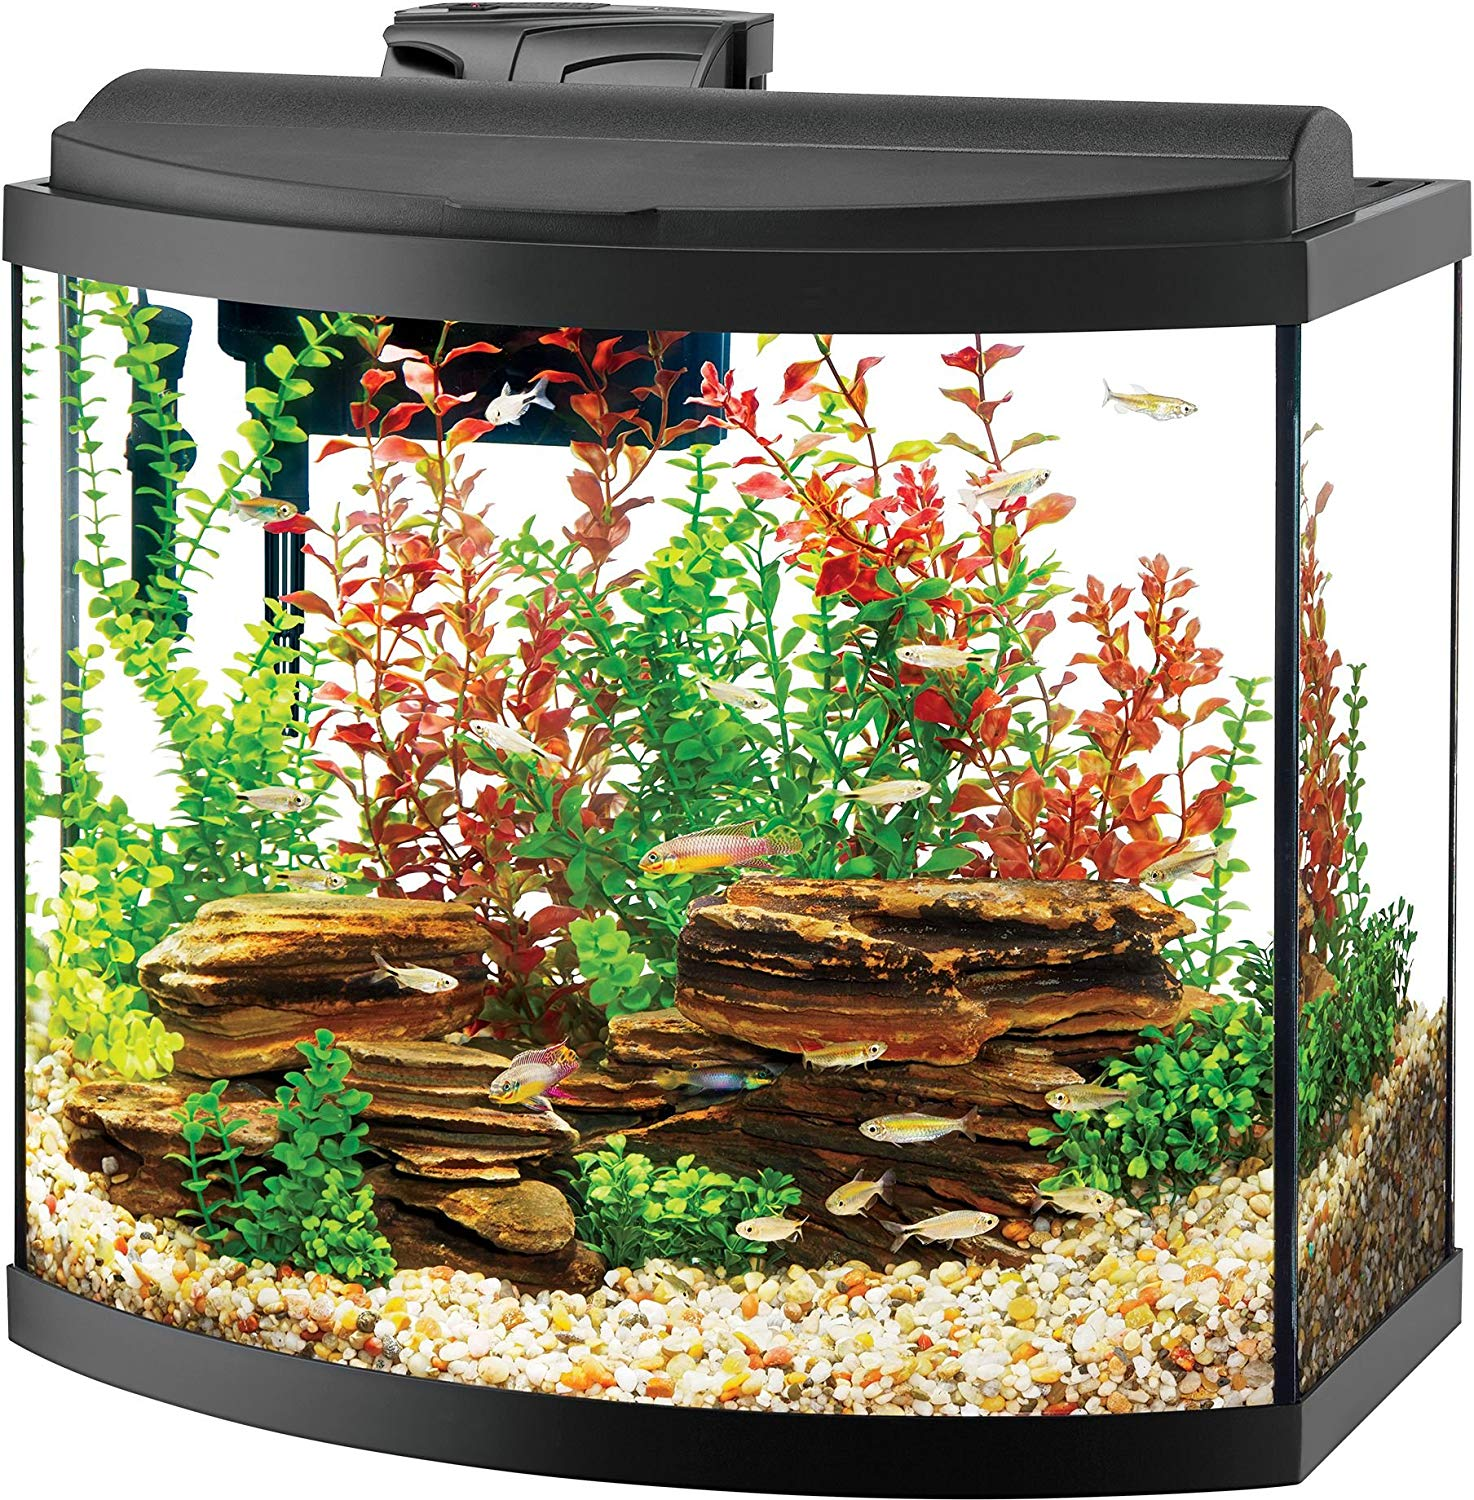 Aqueon Deluxe LED Bow Front Goldfish Aquarium Kit review by www.puppyurl.com